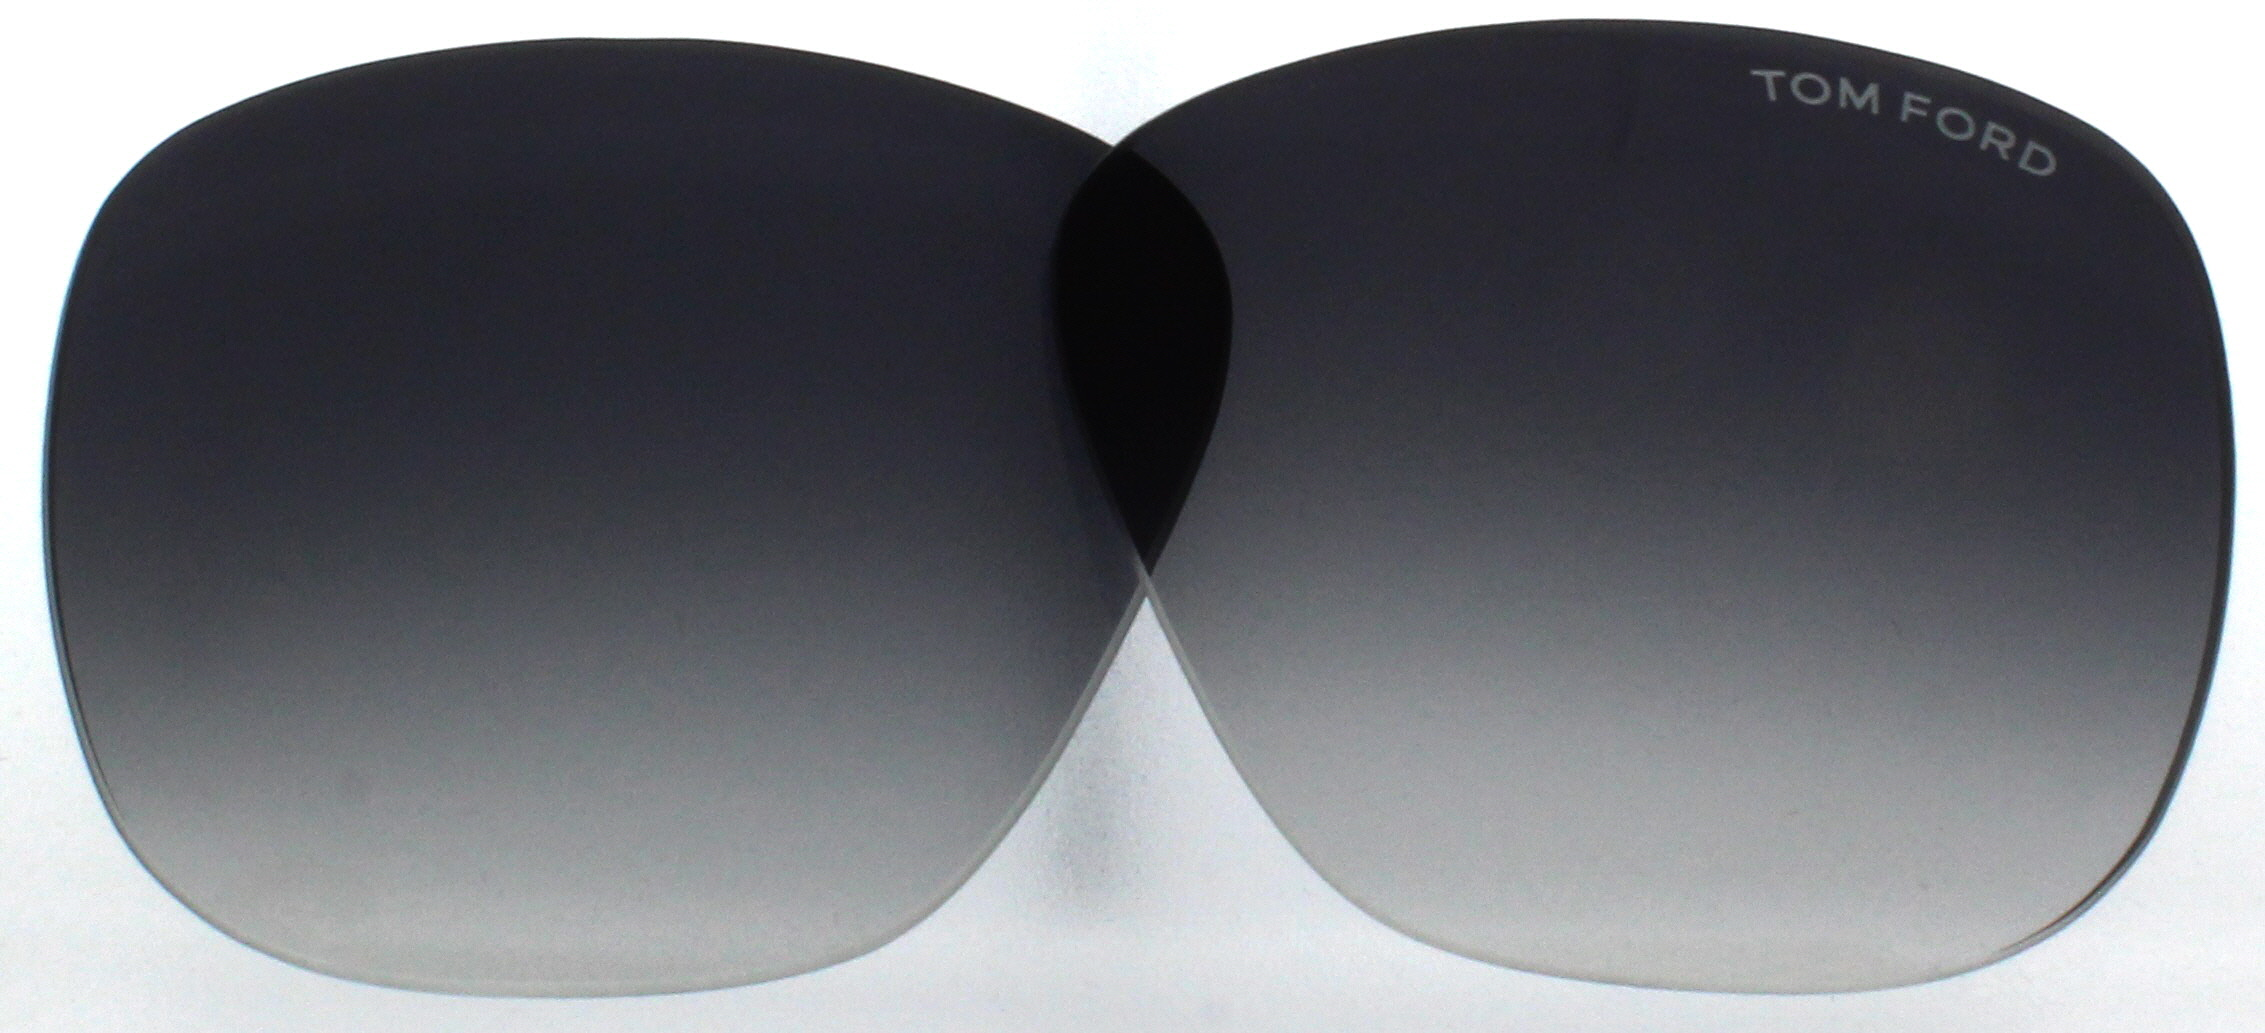 f6817f14252 Tom Ford Replacement Lenses FT0436 Grey 53mm